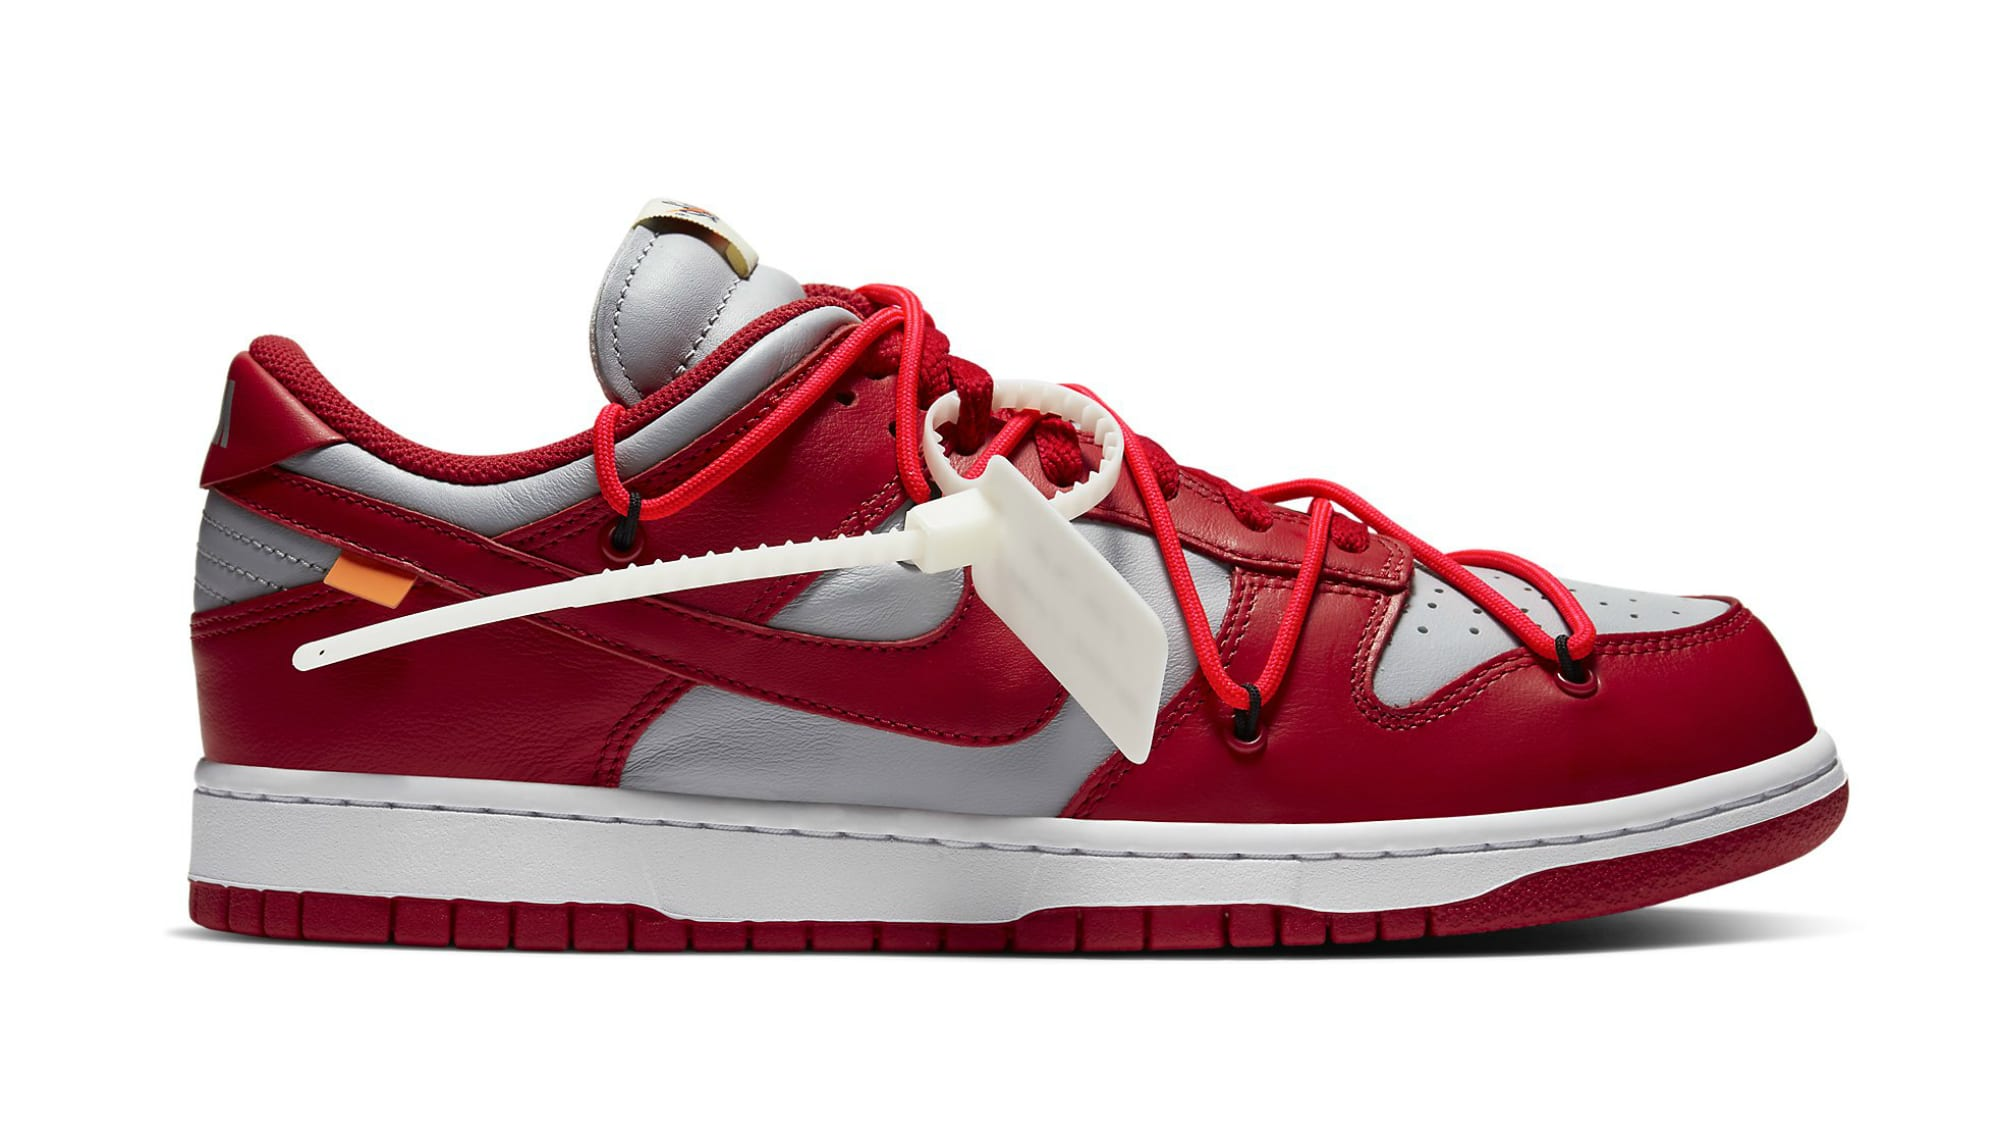 off-white-nike-dunk-low-university-red-wolf-grey-ct0856-600-release-date